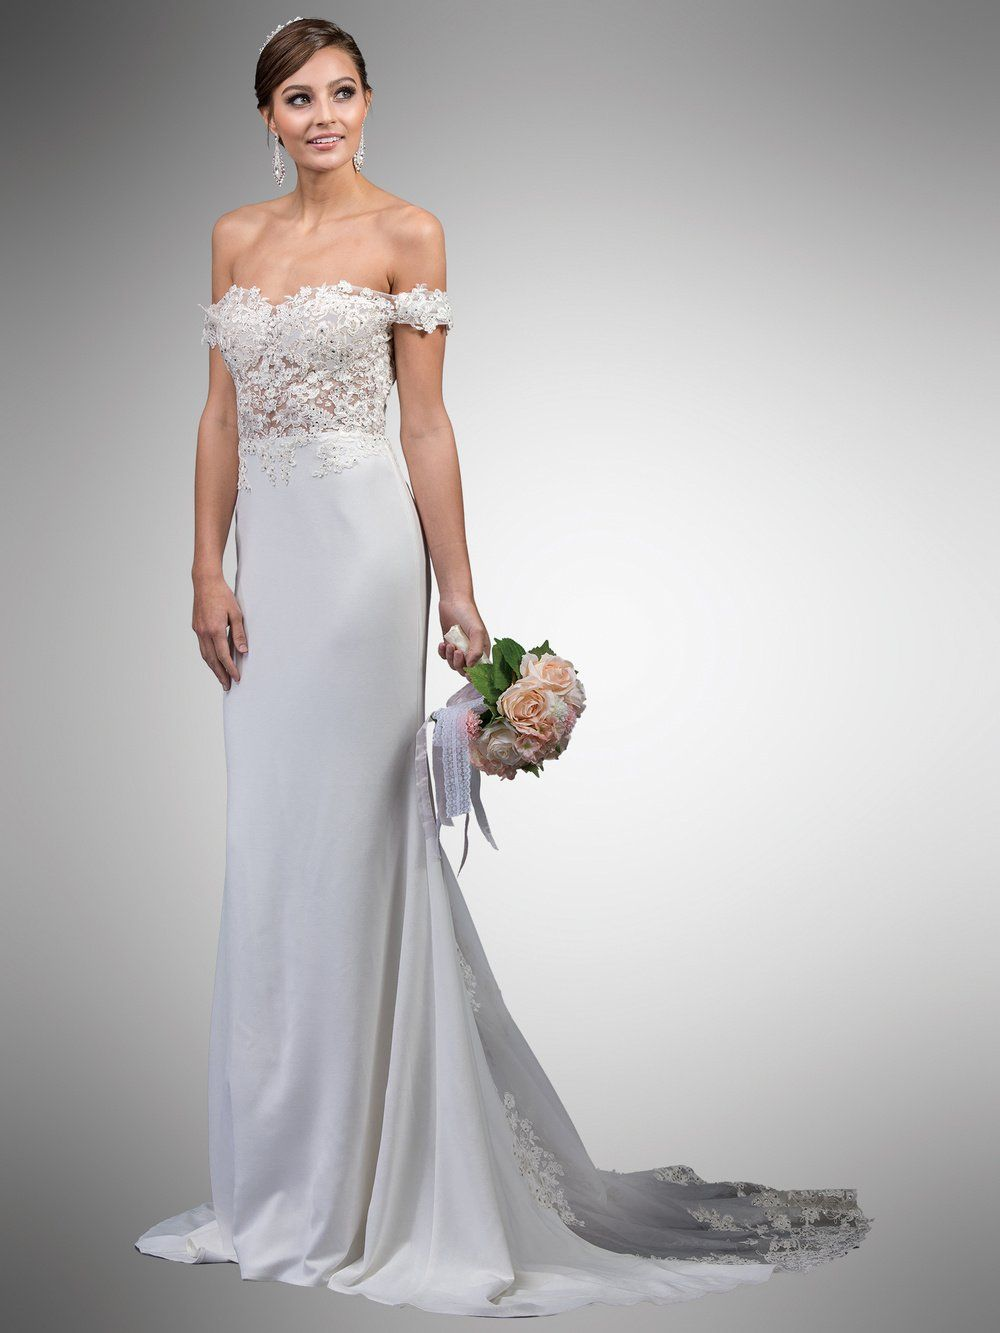 Sexy beach wedding dress dq0049-Simply Fab Dress